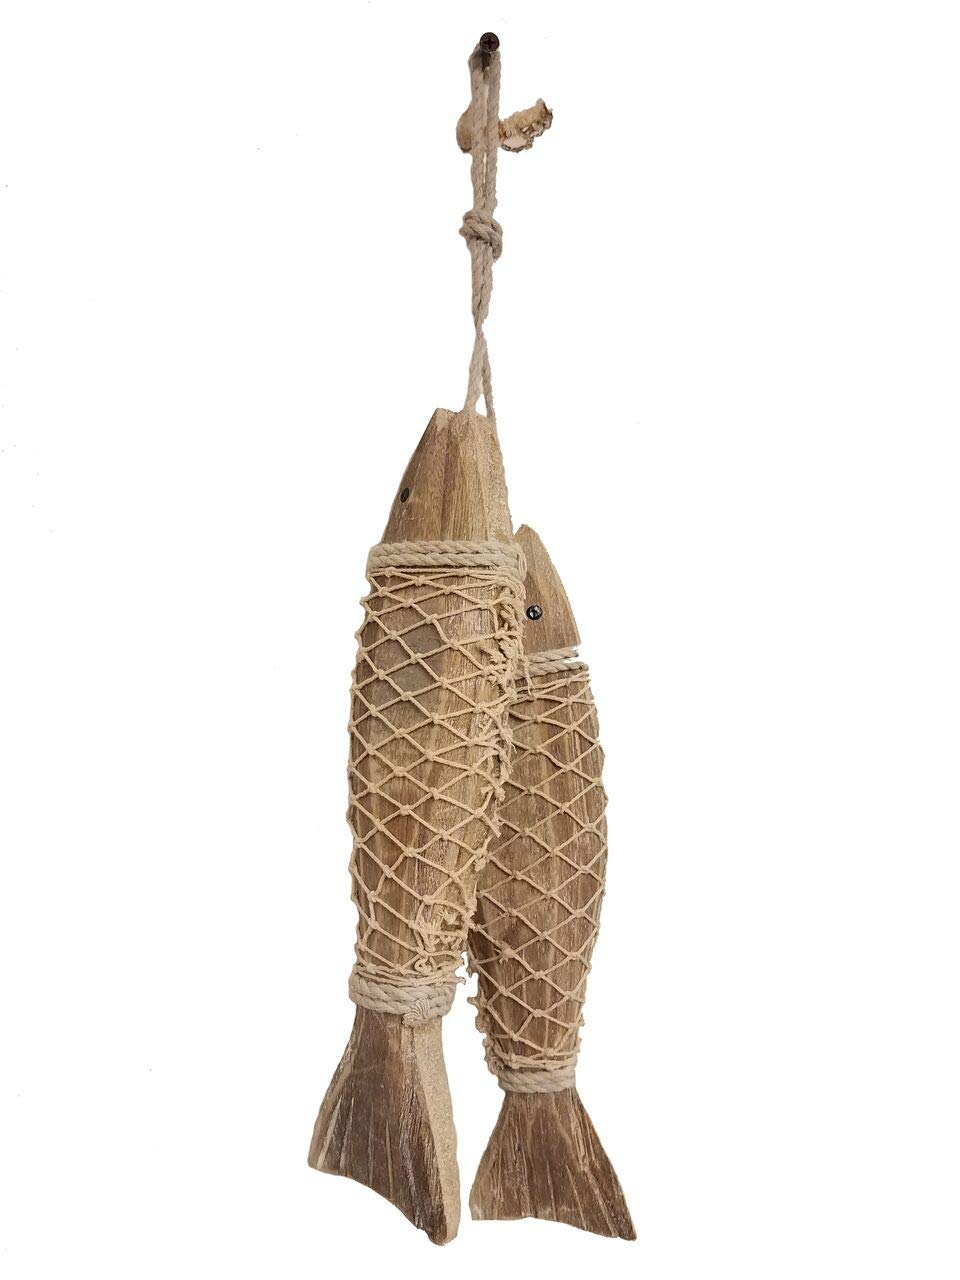 HANDCARVED Distressed Rustic Style Wood Indoor//Outdoor Hanging Fish! 2 All Seas Imports Large Set of